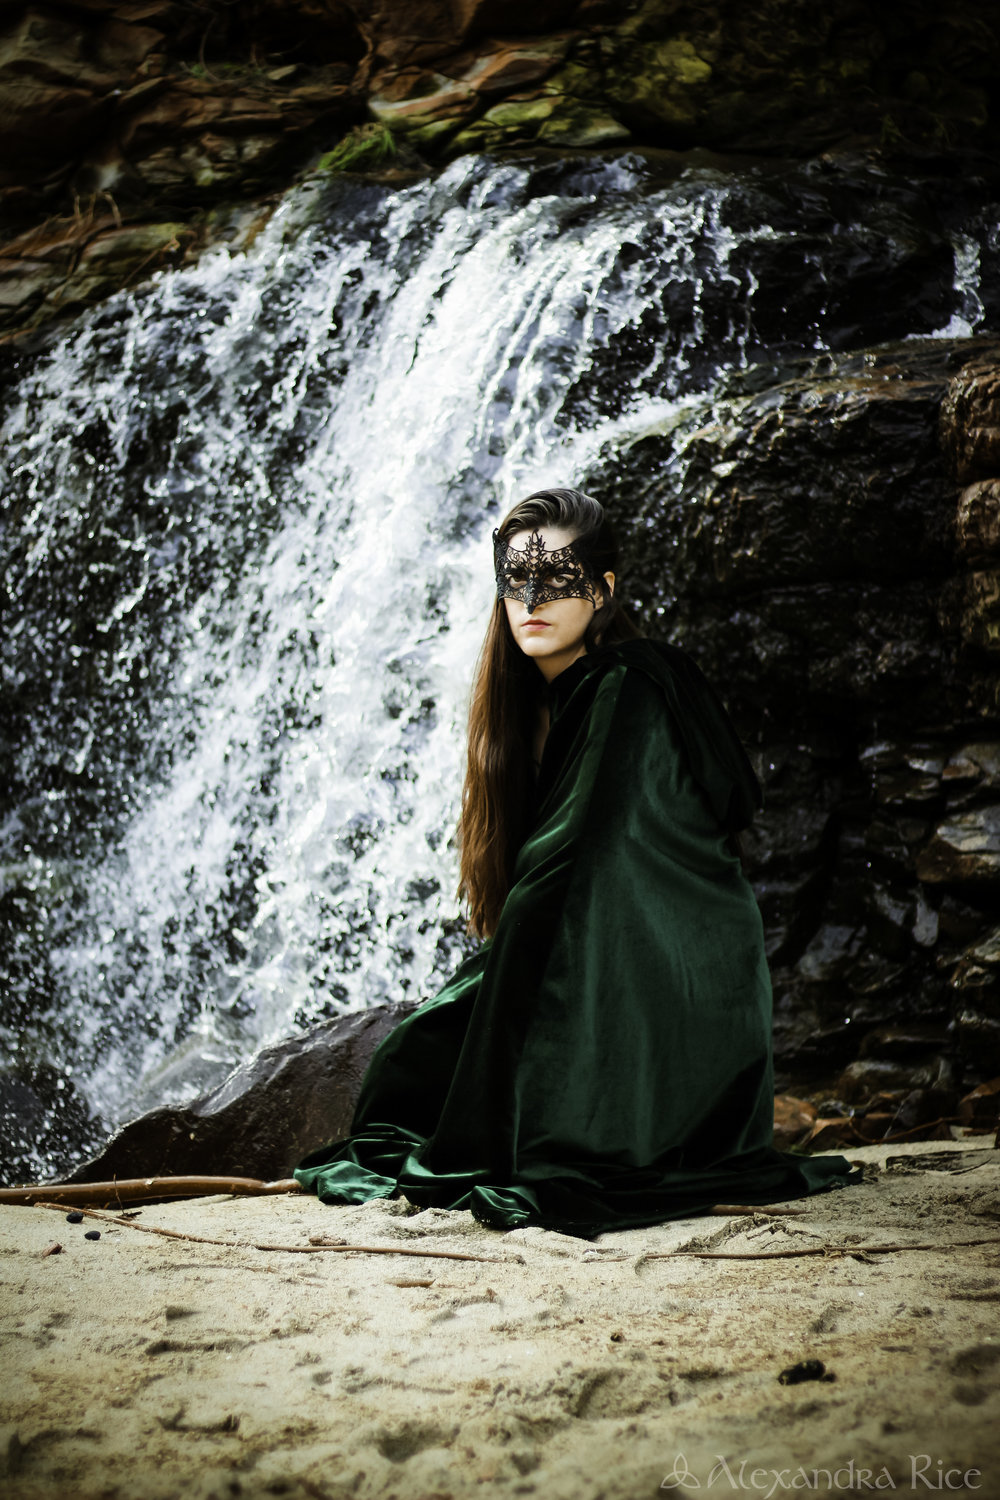 alexandra-rice-photography-k.m.rice-author-fantastical-photoshoot-highway-one-waterfall-mask-mystical-fantasy-epic.jpg